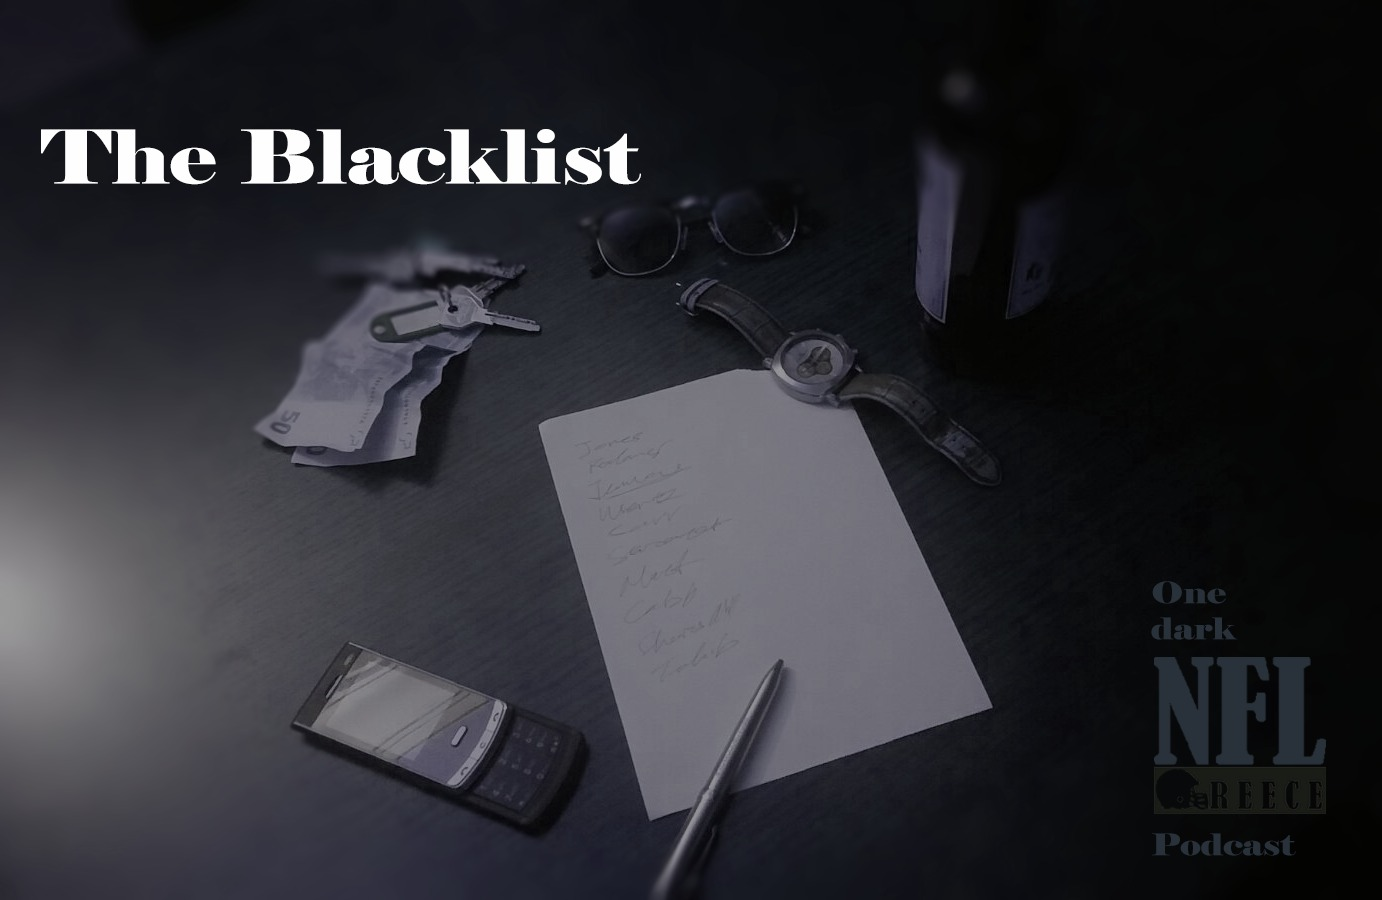 the-blacklist-podcast